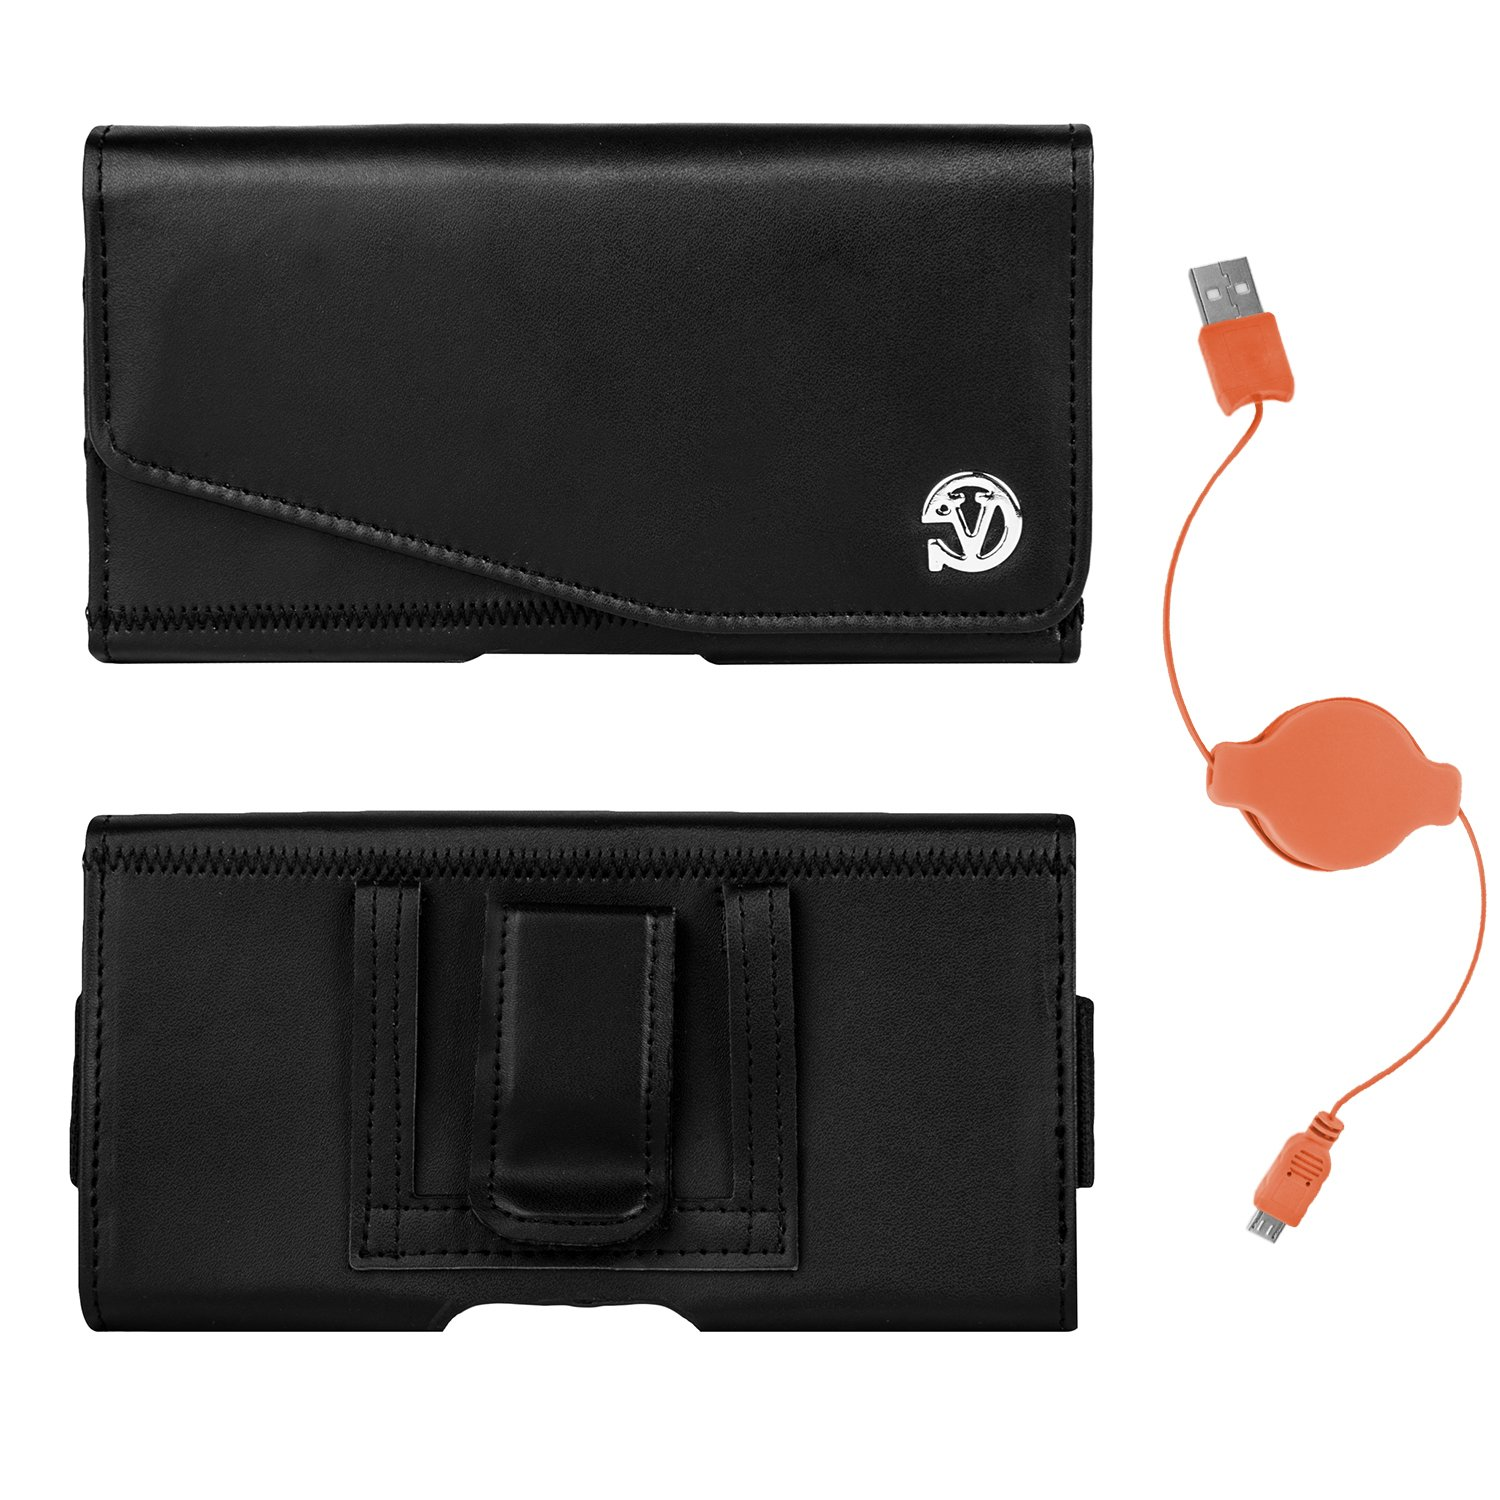 Noble PU Leather Belt Hip Holster Case for HTC Desire 520/526/530/626/630/825/510/516/610/626s/816/Eye + USB Cable (Orange)